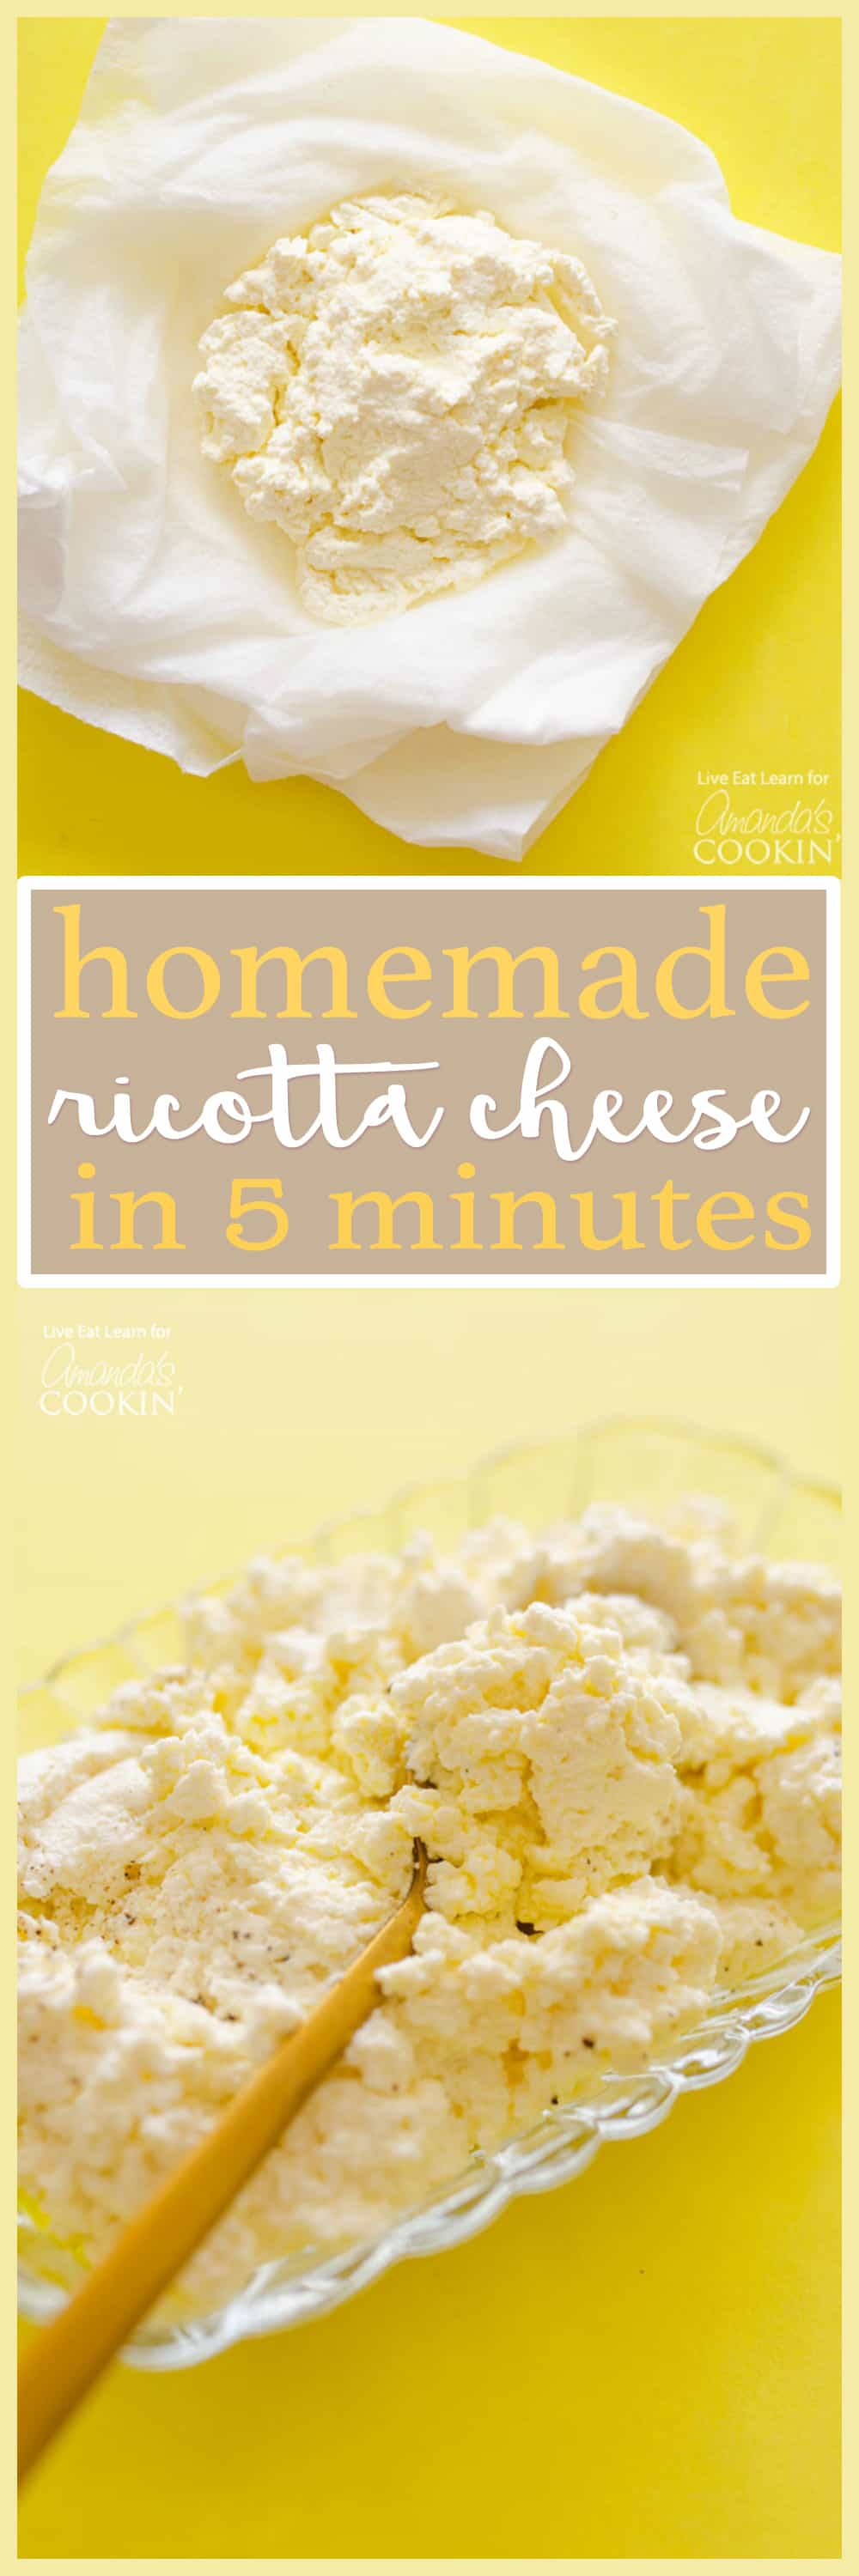 pinterest image with text for homemade ricotta